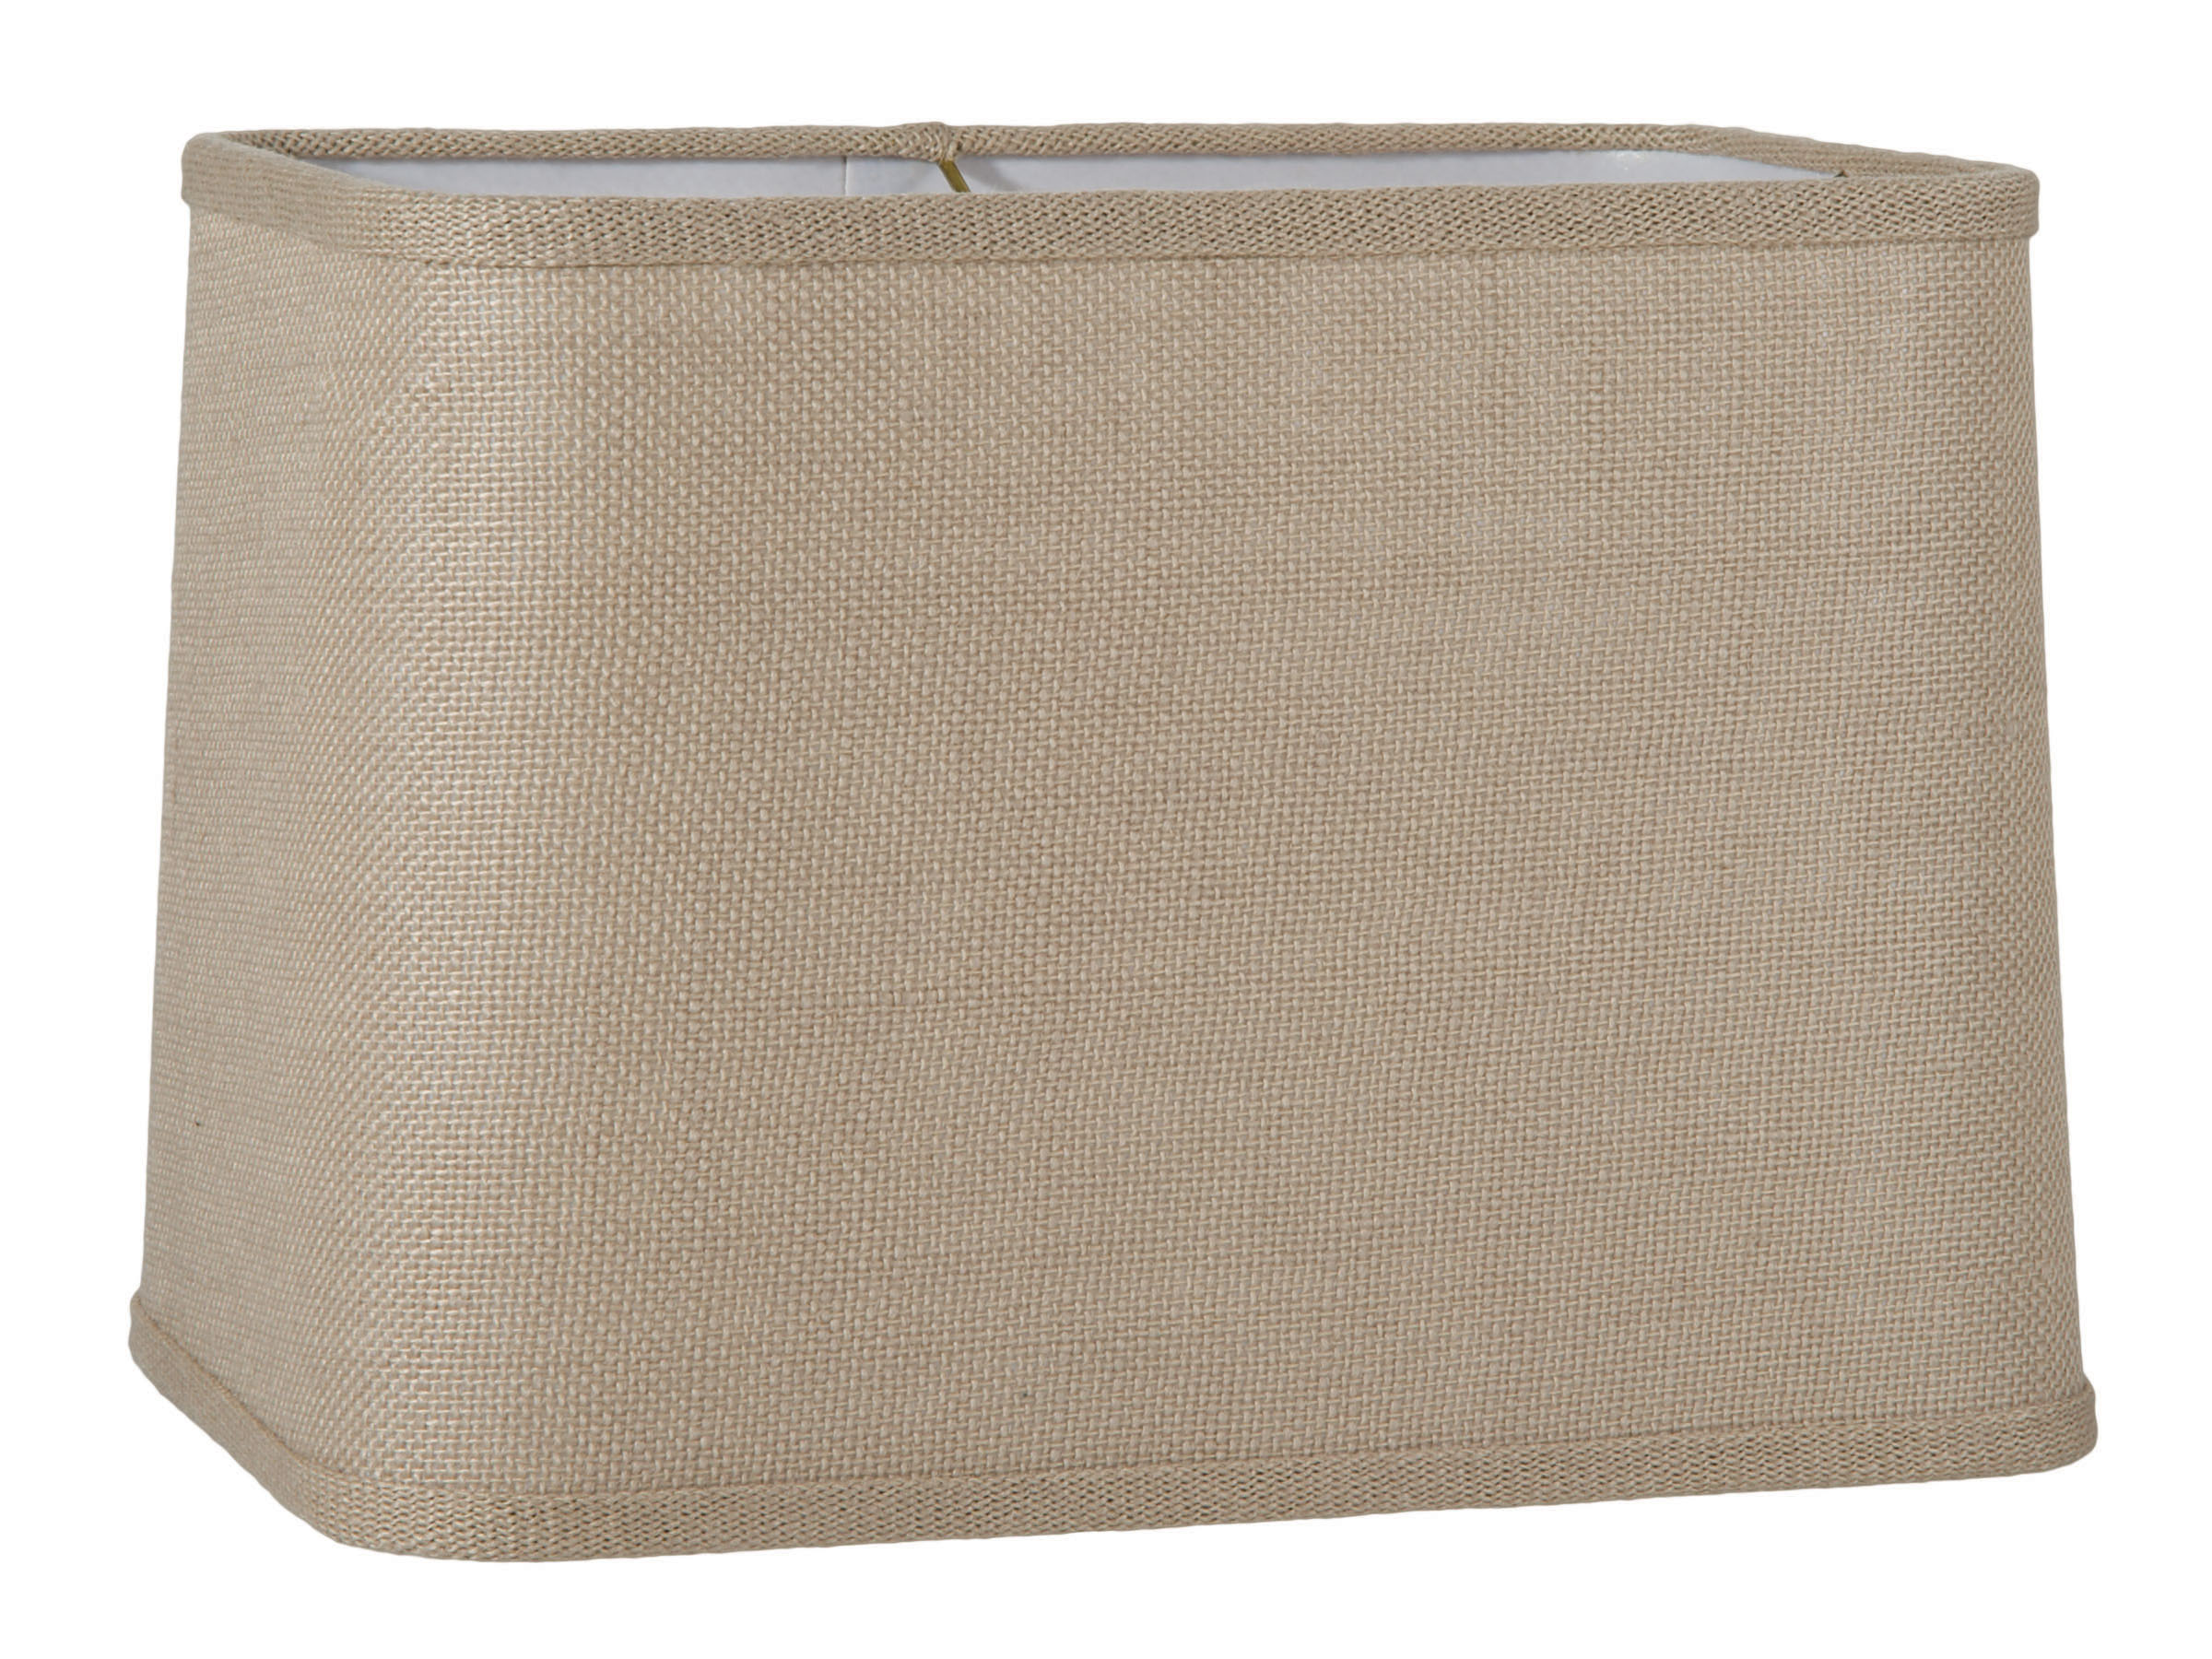 Driftwood Burlap Round Corner Rectangle Lampshade 05649p